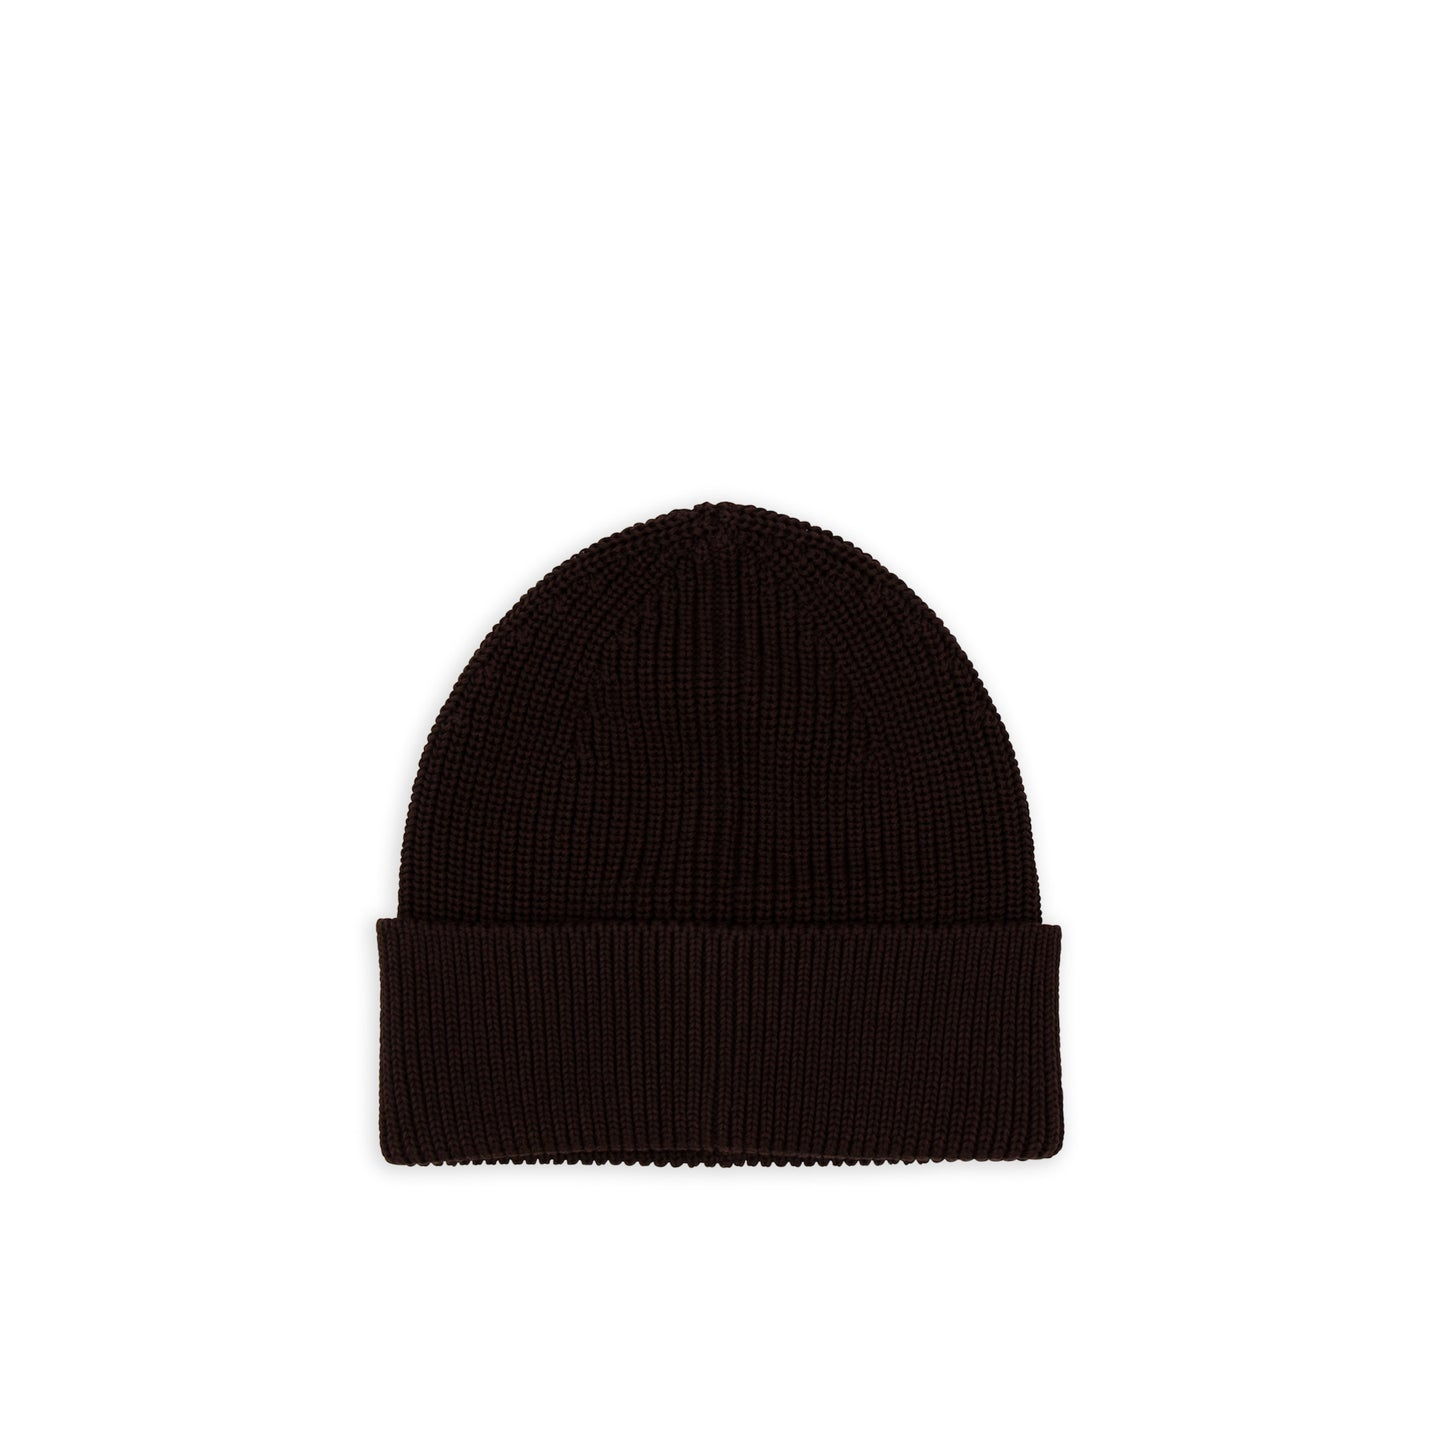 ANDERSEN-ANDERSEN Cotton Beanie - Brown